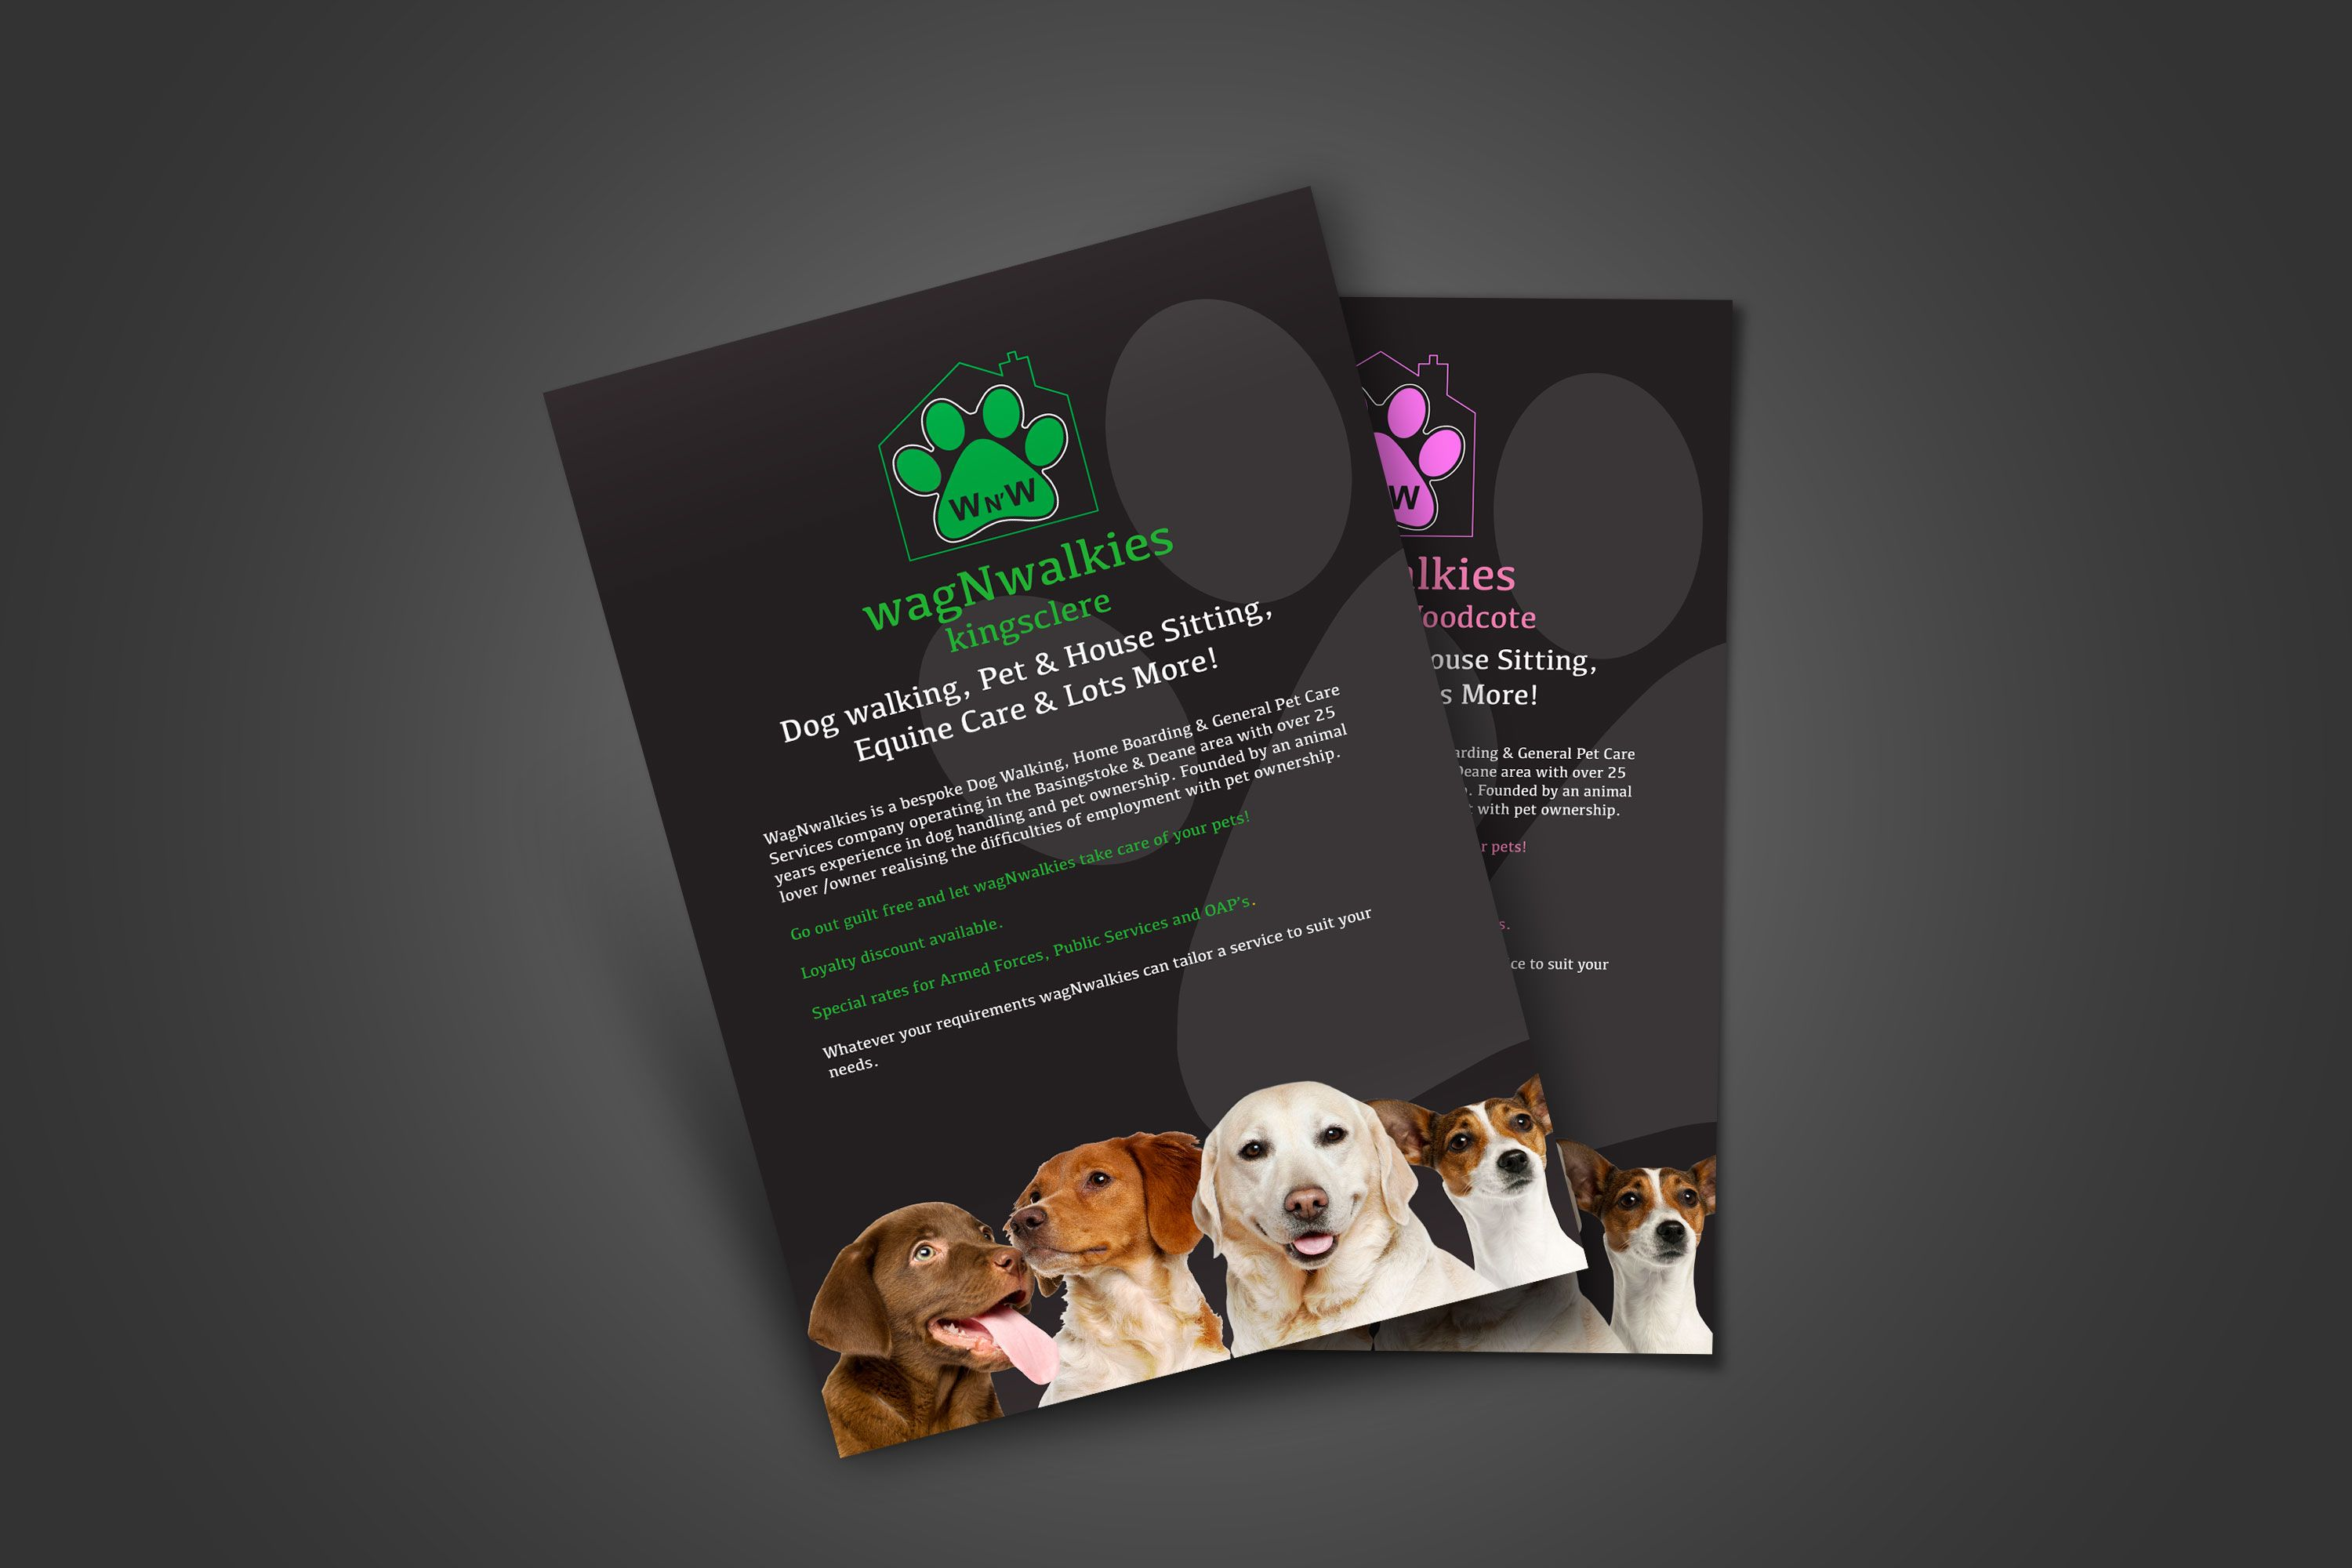 Wagnwalkies Flyer Design Marketing Collateral